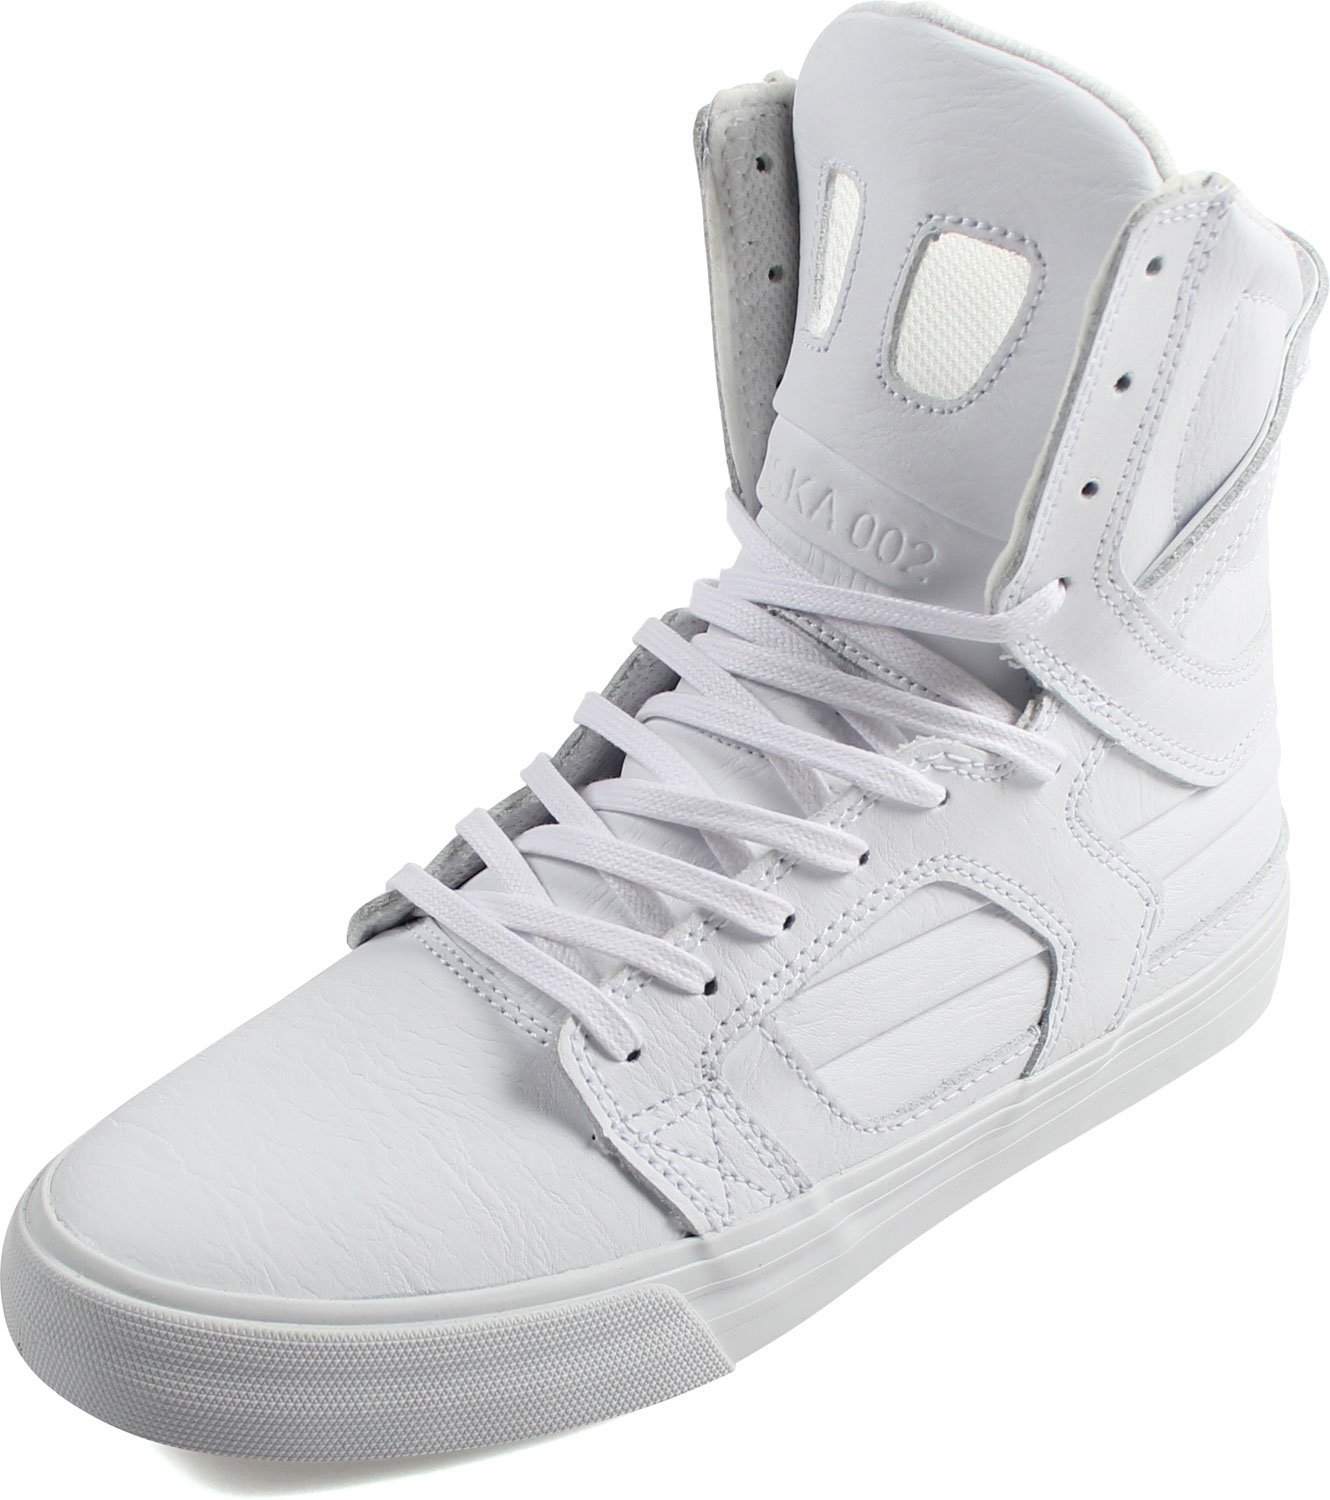 Supra Womens Skytop II Shoes, Size: 10 B(M) US, Color White/White/Red